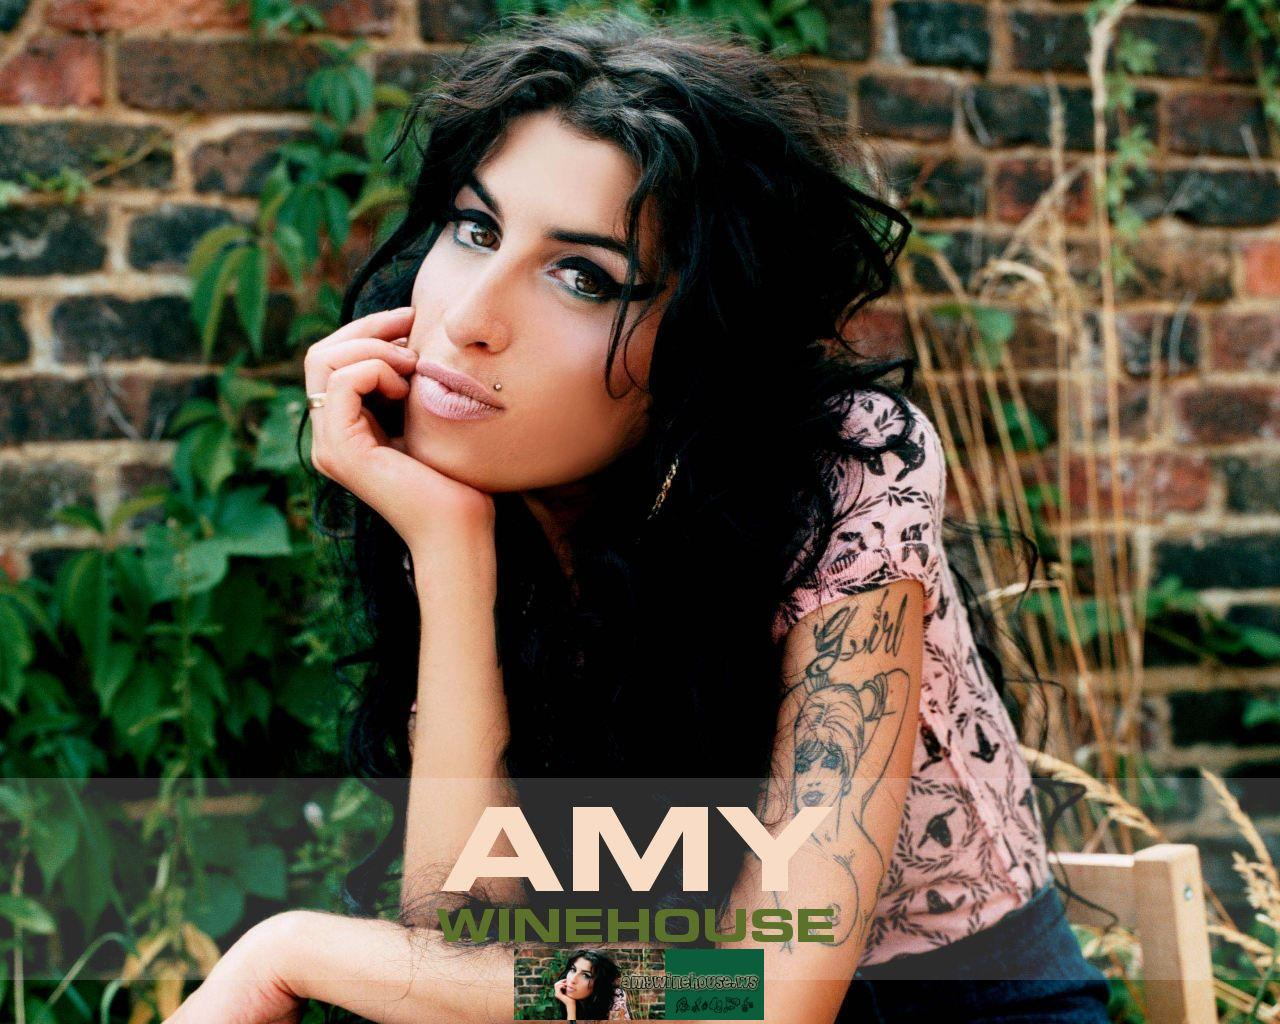 http://2.bp.blogspot.com/-es0MeQ3uV8o/UFc7vy4zFMI/AAAAAAAAA7o/9RUdDC0Nf4g/s1600/amy-winehouse-wallpaper-1-big.jpg